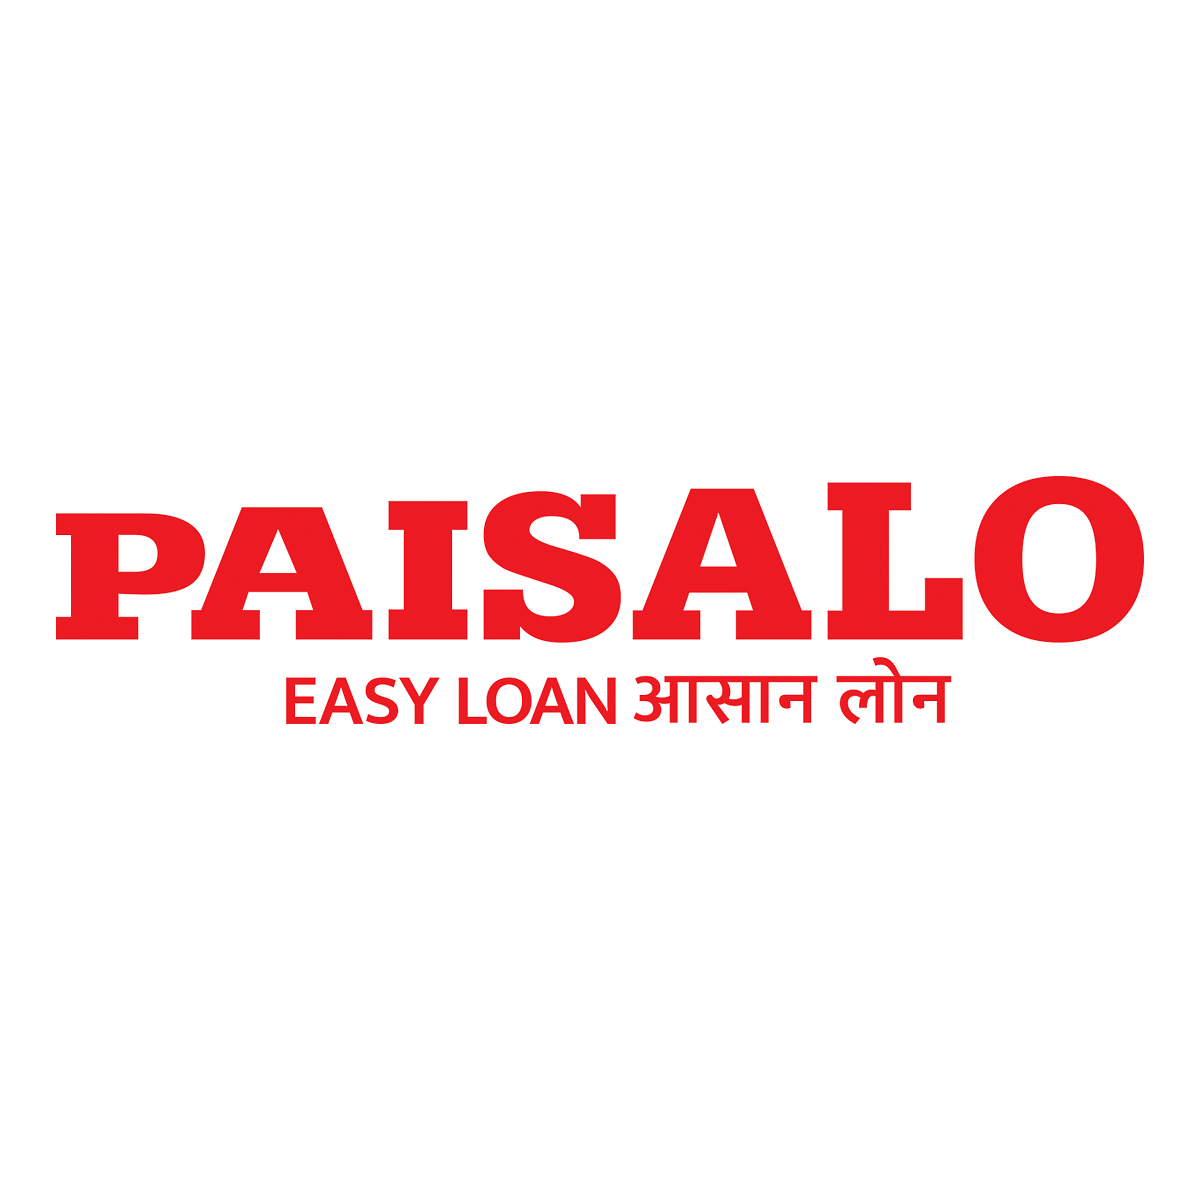 Paisalo is tapping into the Rs 8 lakh crore market opportunity of small ticket loans for India's 365 million unbanked population.